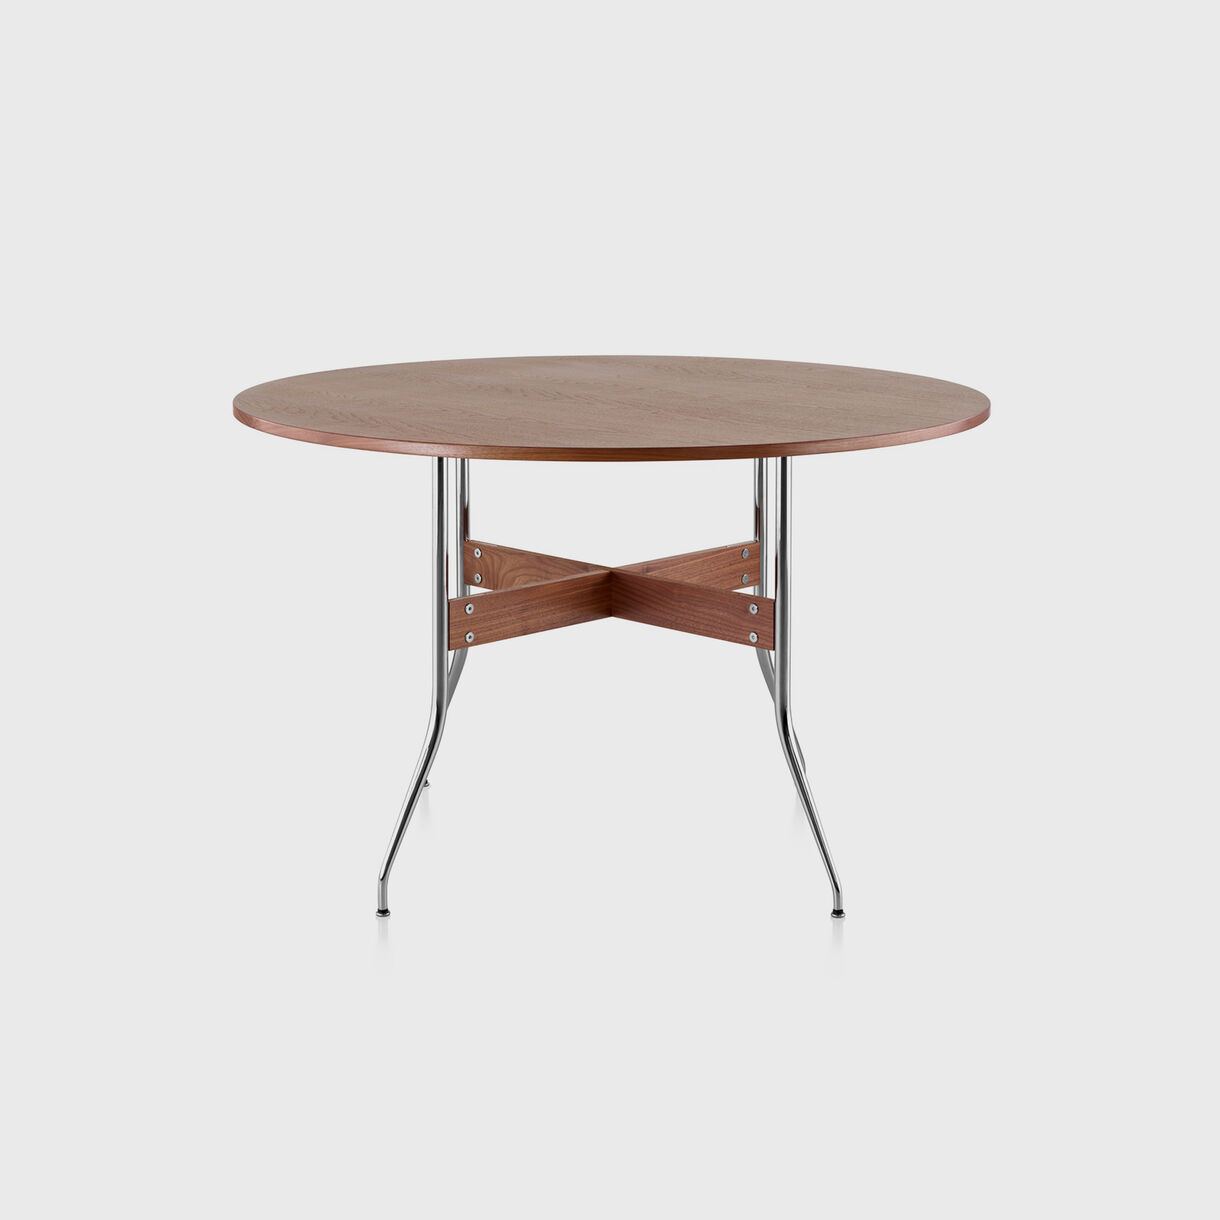 Nelson Swag Leg Dining Table, Round